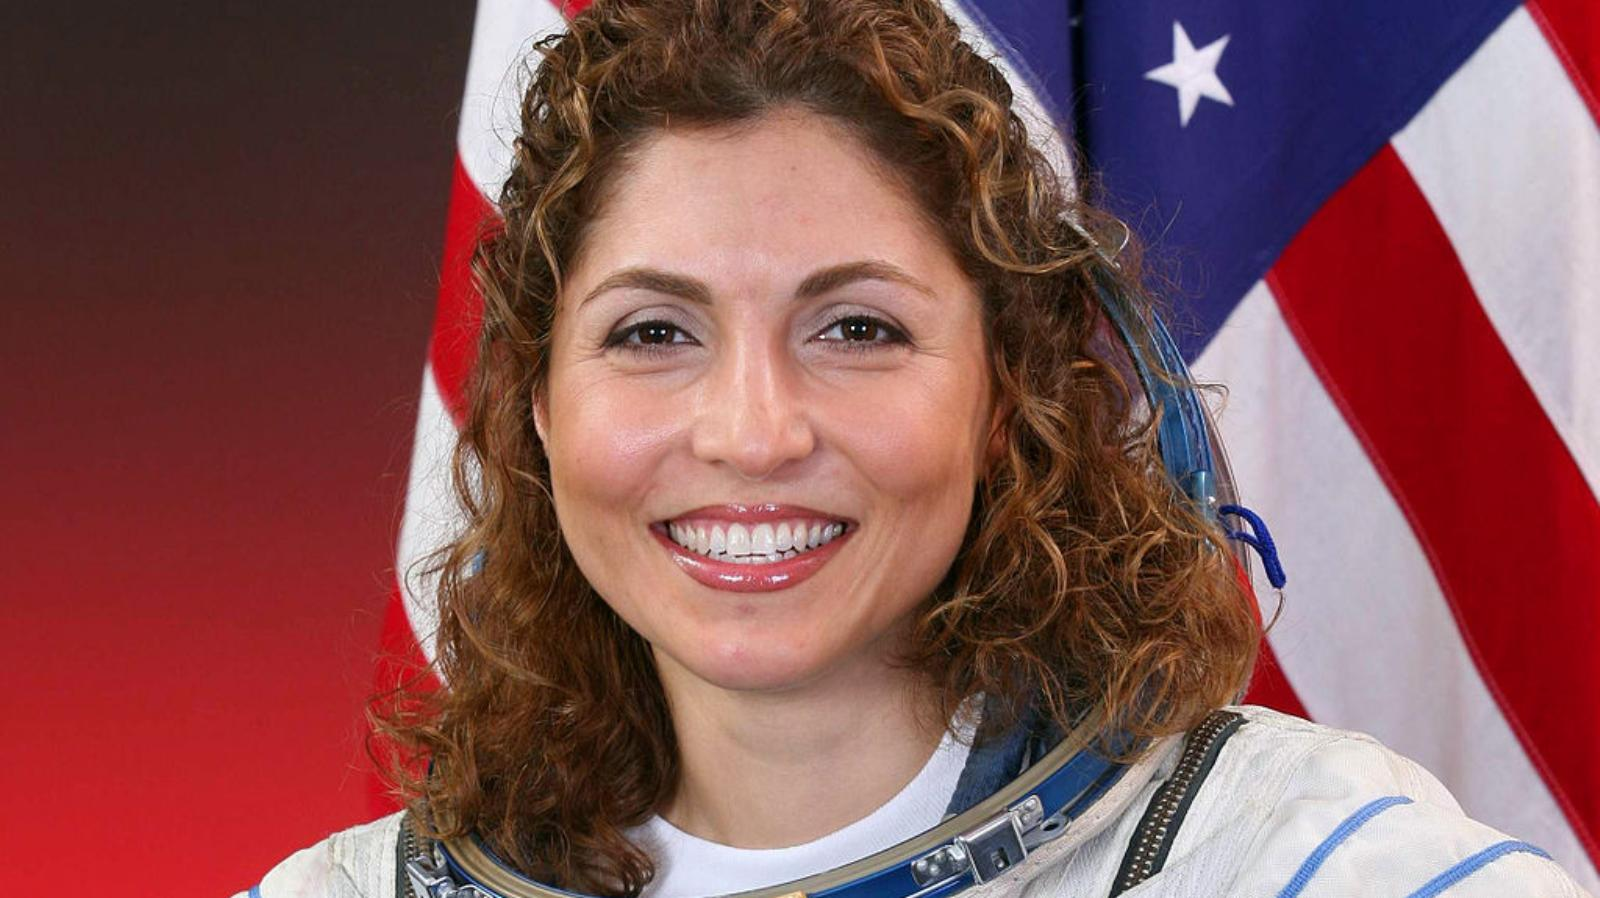 Anousheh Ansari Headshot - courtesy of NASA